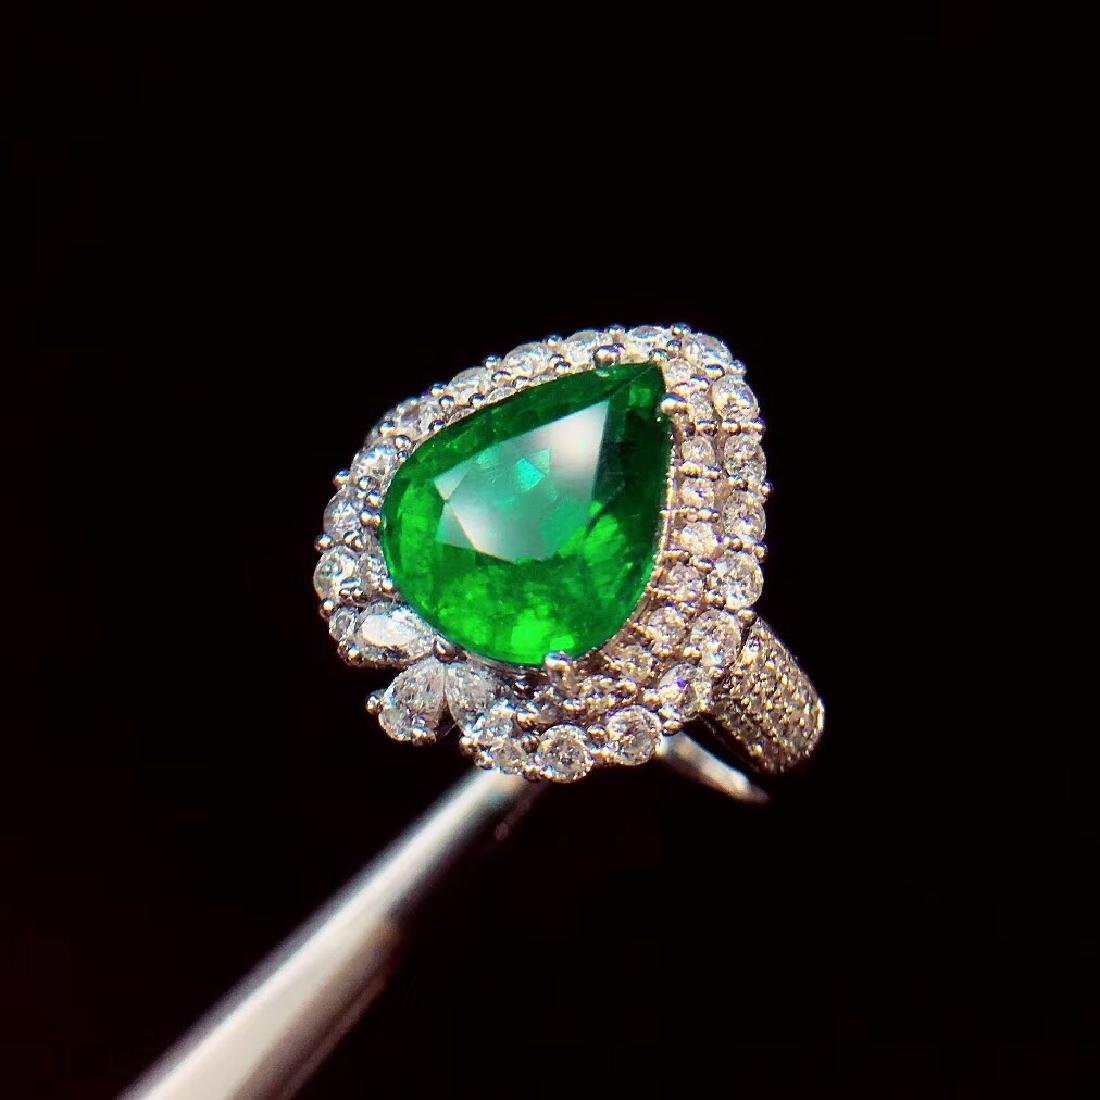 4ct Emerald Ring in 18kt white Gold - 2